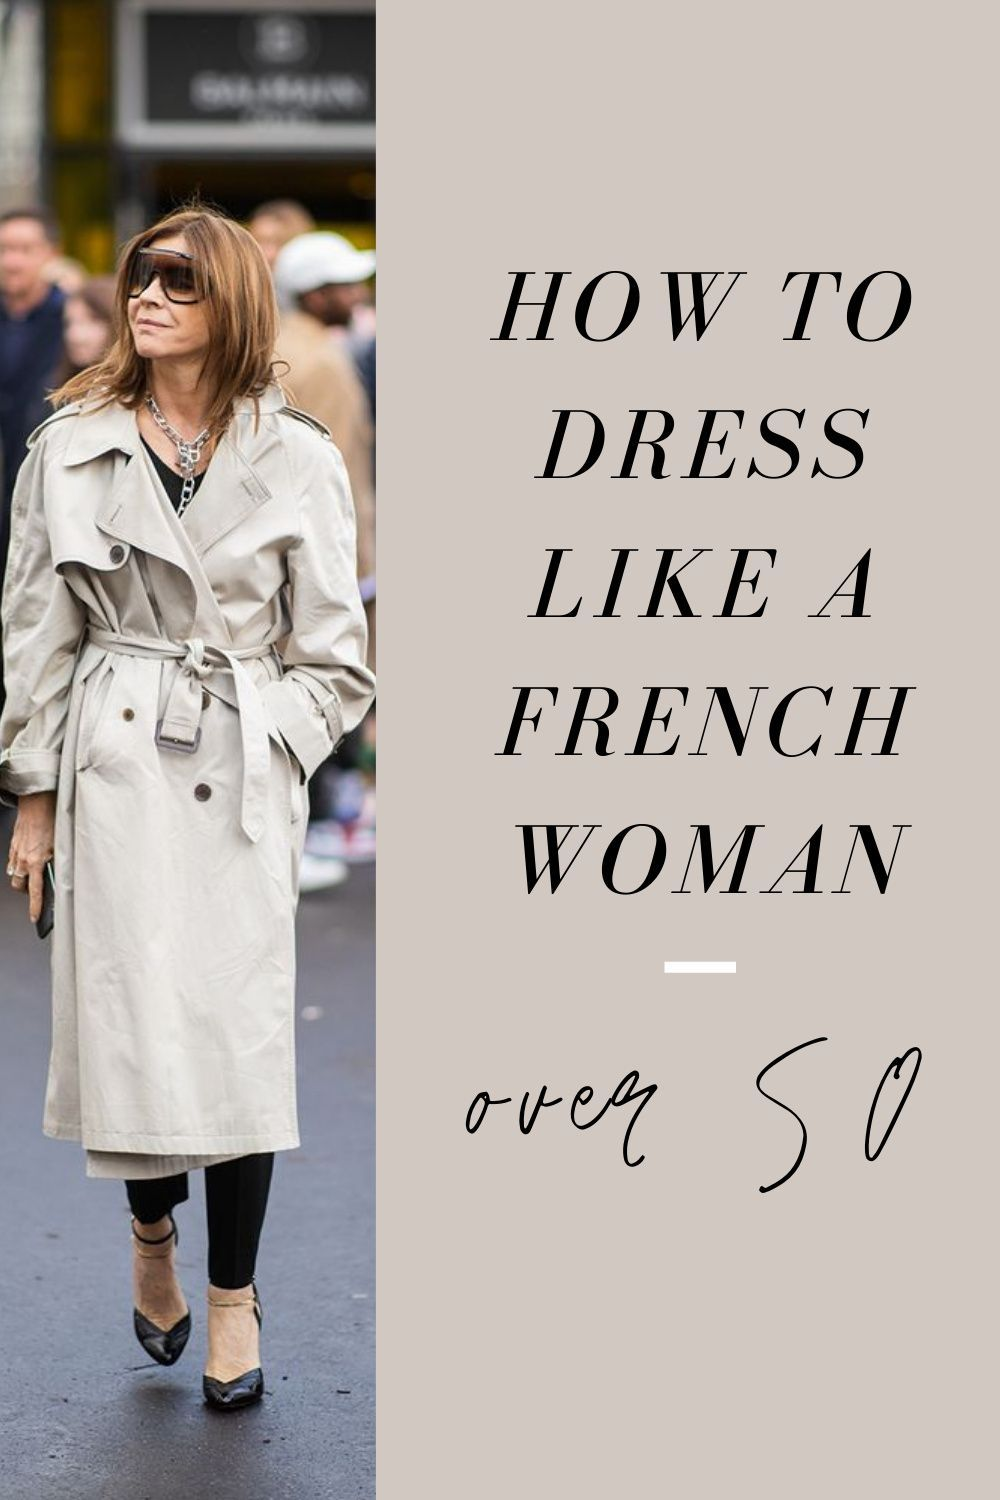 39++ How to dress like a french woman over 50 info